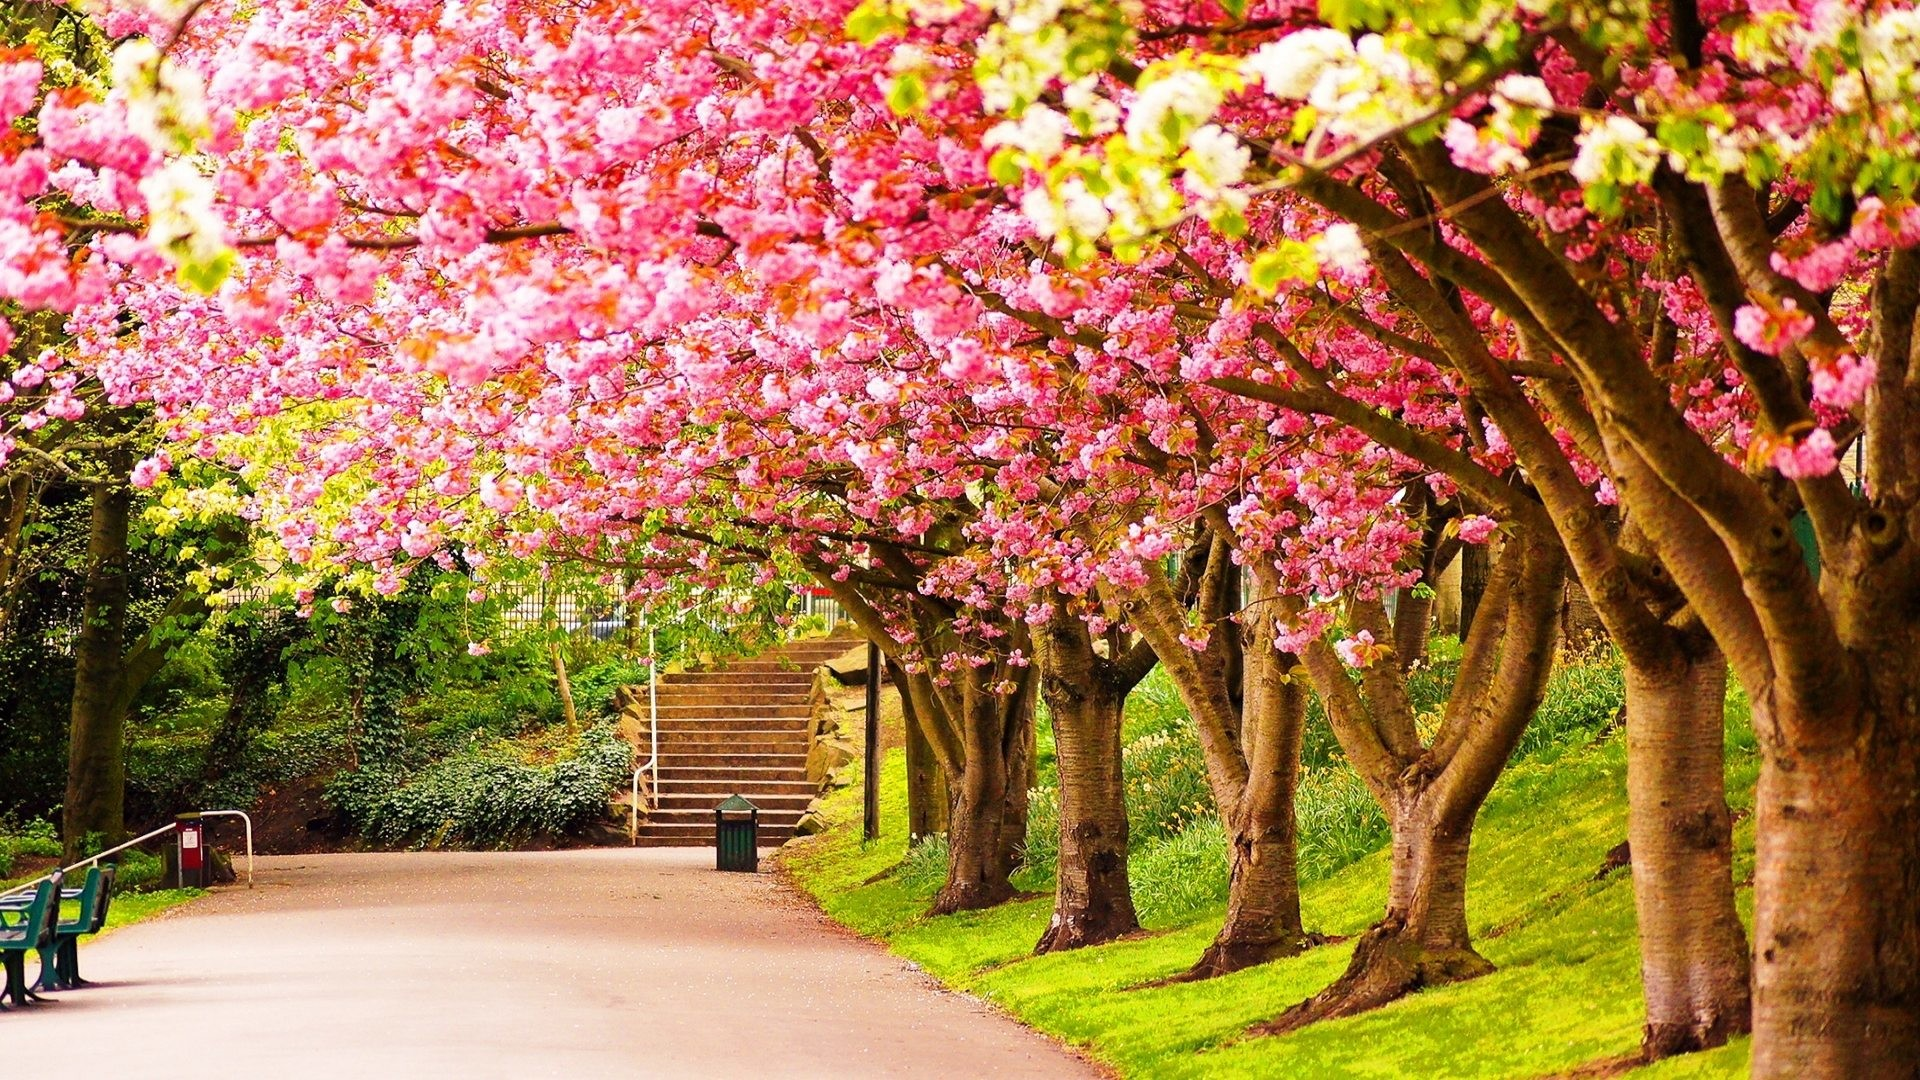 Res: 1920x1080, spring desktop background wallpaper hd wallpapers high definition